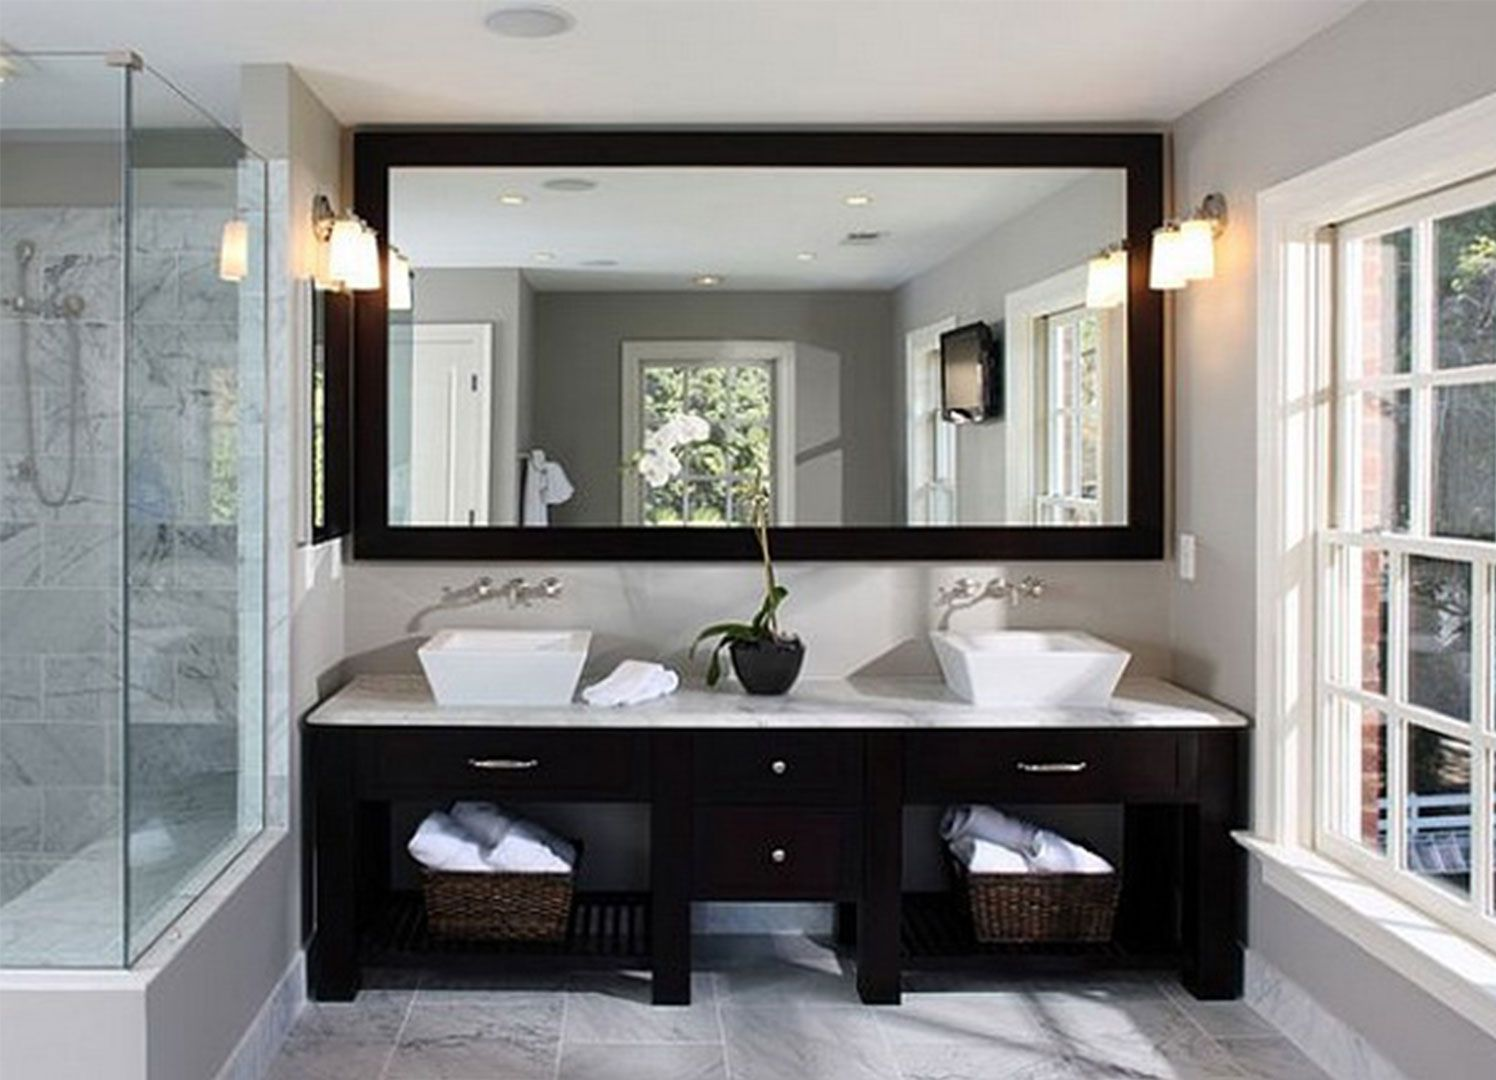 bathroom bathroom ideas 2015 square mirror design white colored wall bathroom ideas line black models cabinet bathroom design wide french window wide - Bathroom Decorating Ideas Australia